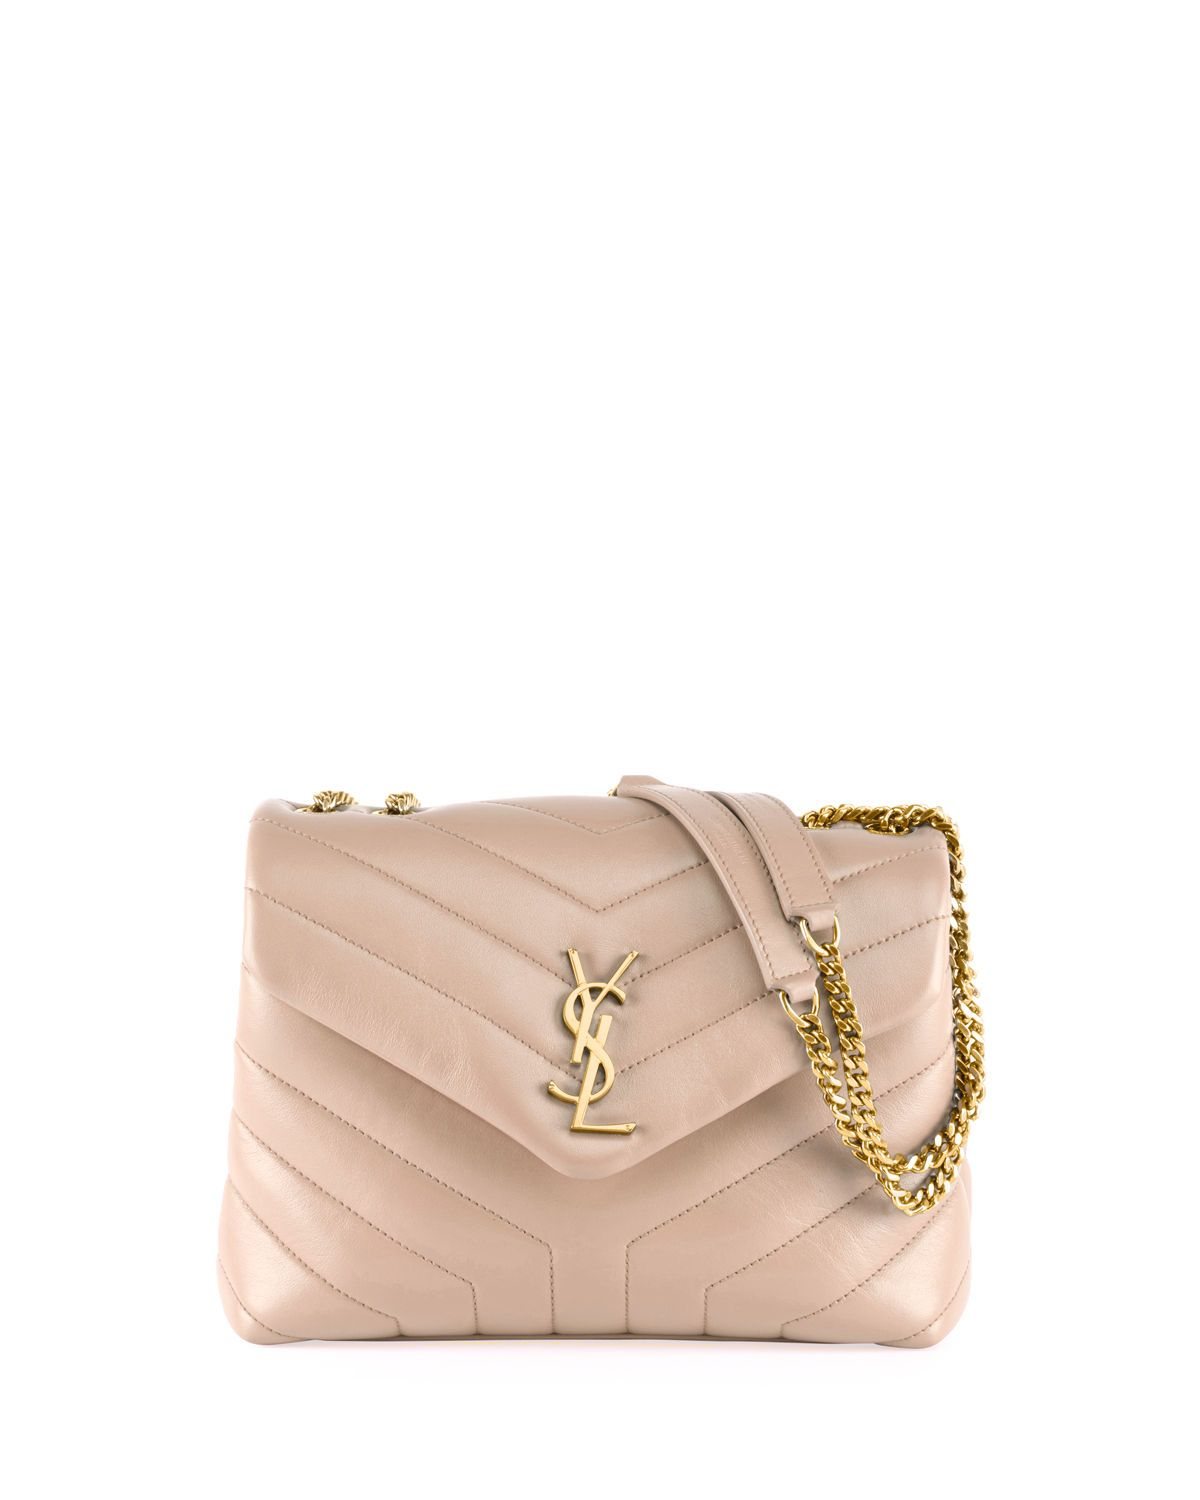 1598b3b840e Loulou Monogram YSL Small V-Flap Chain Shoulder Bag - Lt. Bronze Hardware